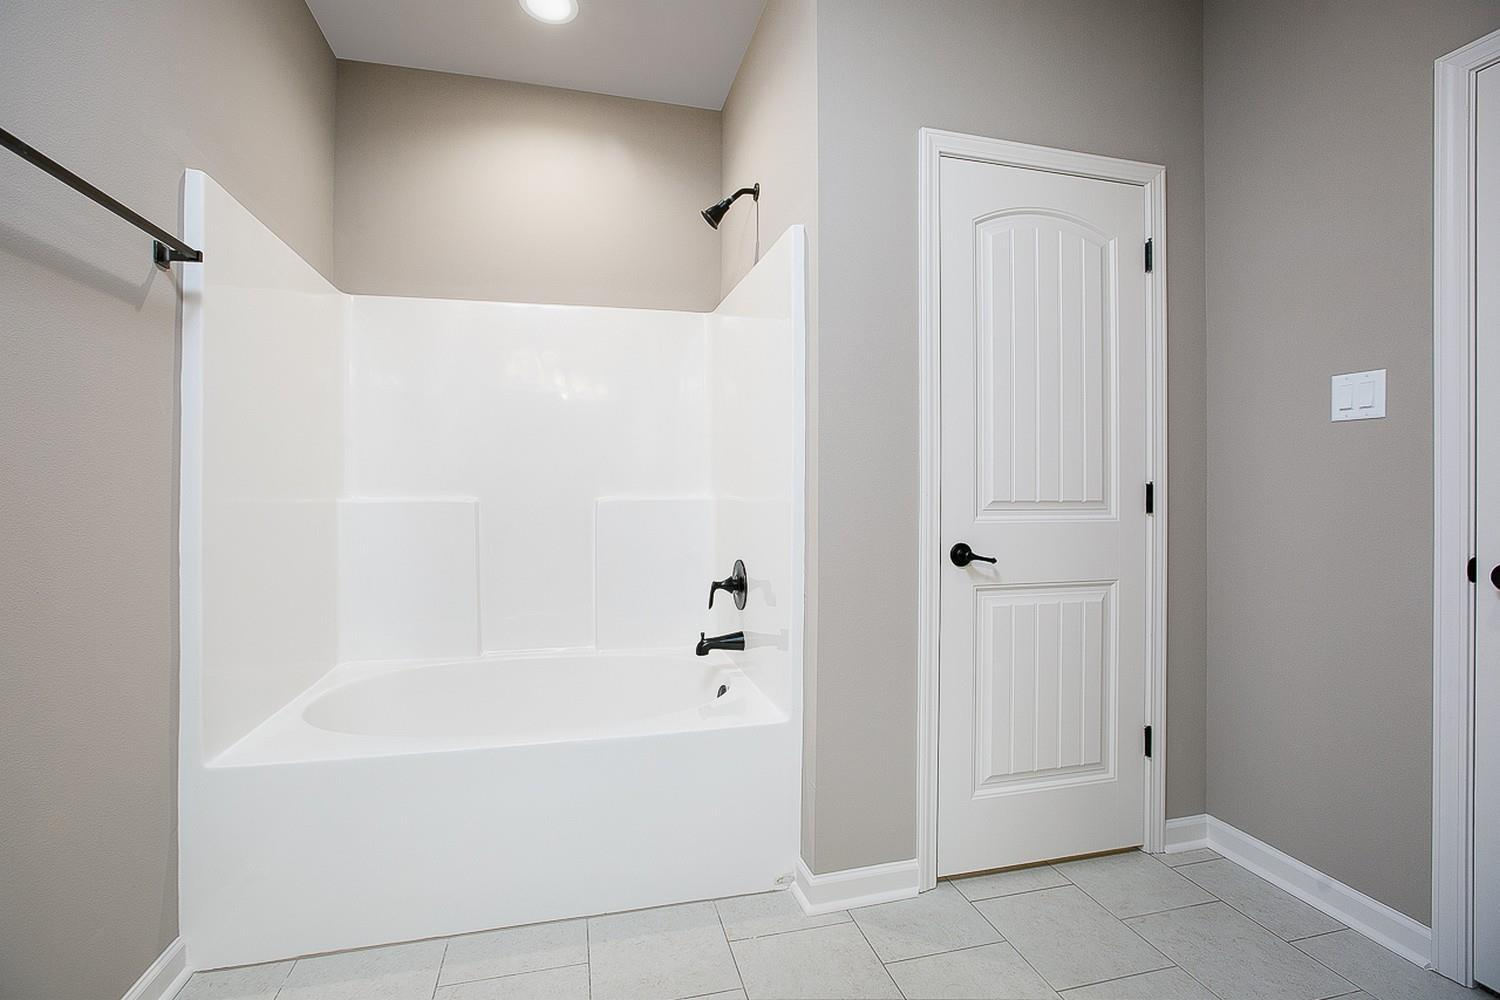 Bathroom featured in the Summerlin I 1500 By Willie & Willie  in Baton Rouge, LA